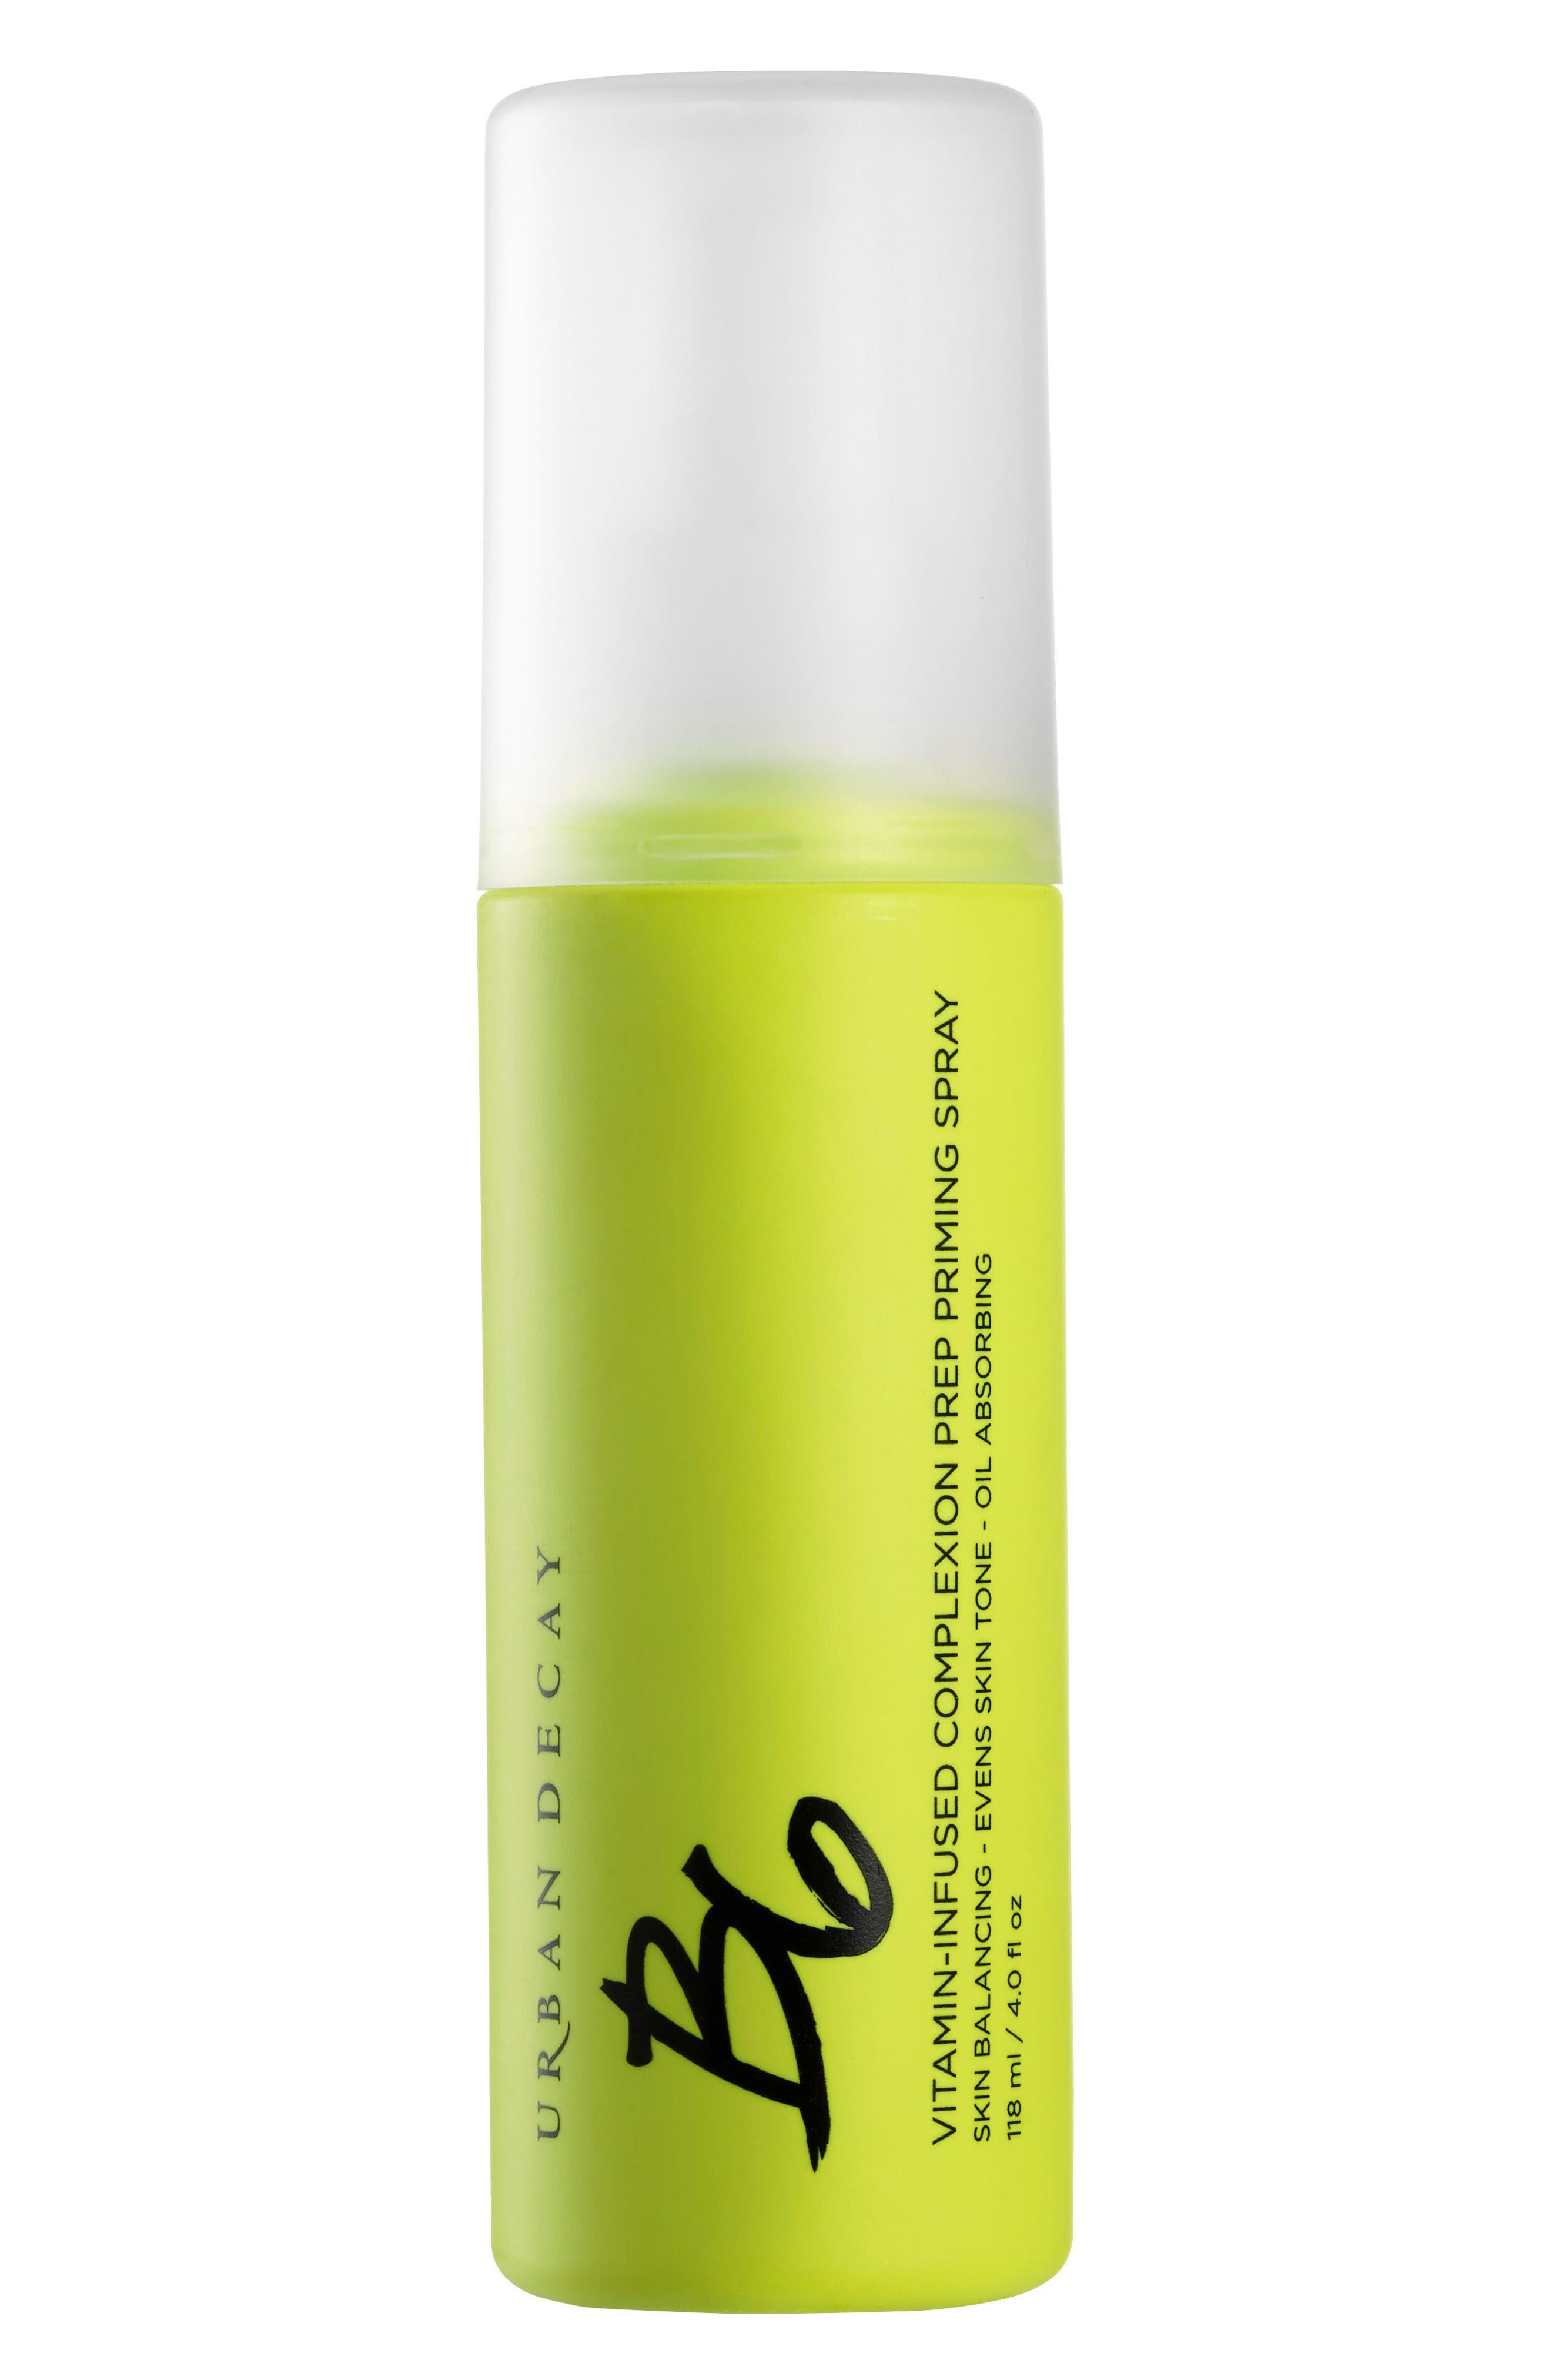 Main Image - Urban Decay B6 Vitamin-Infused Complexion Prep Priming Spray